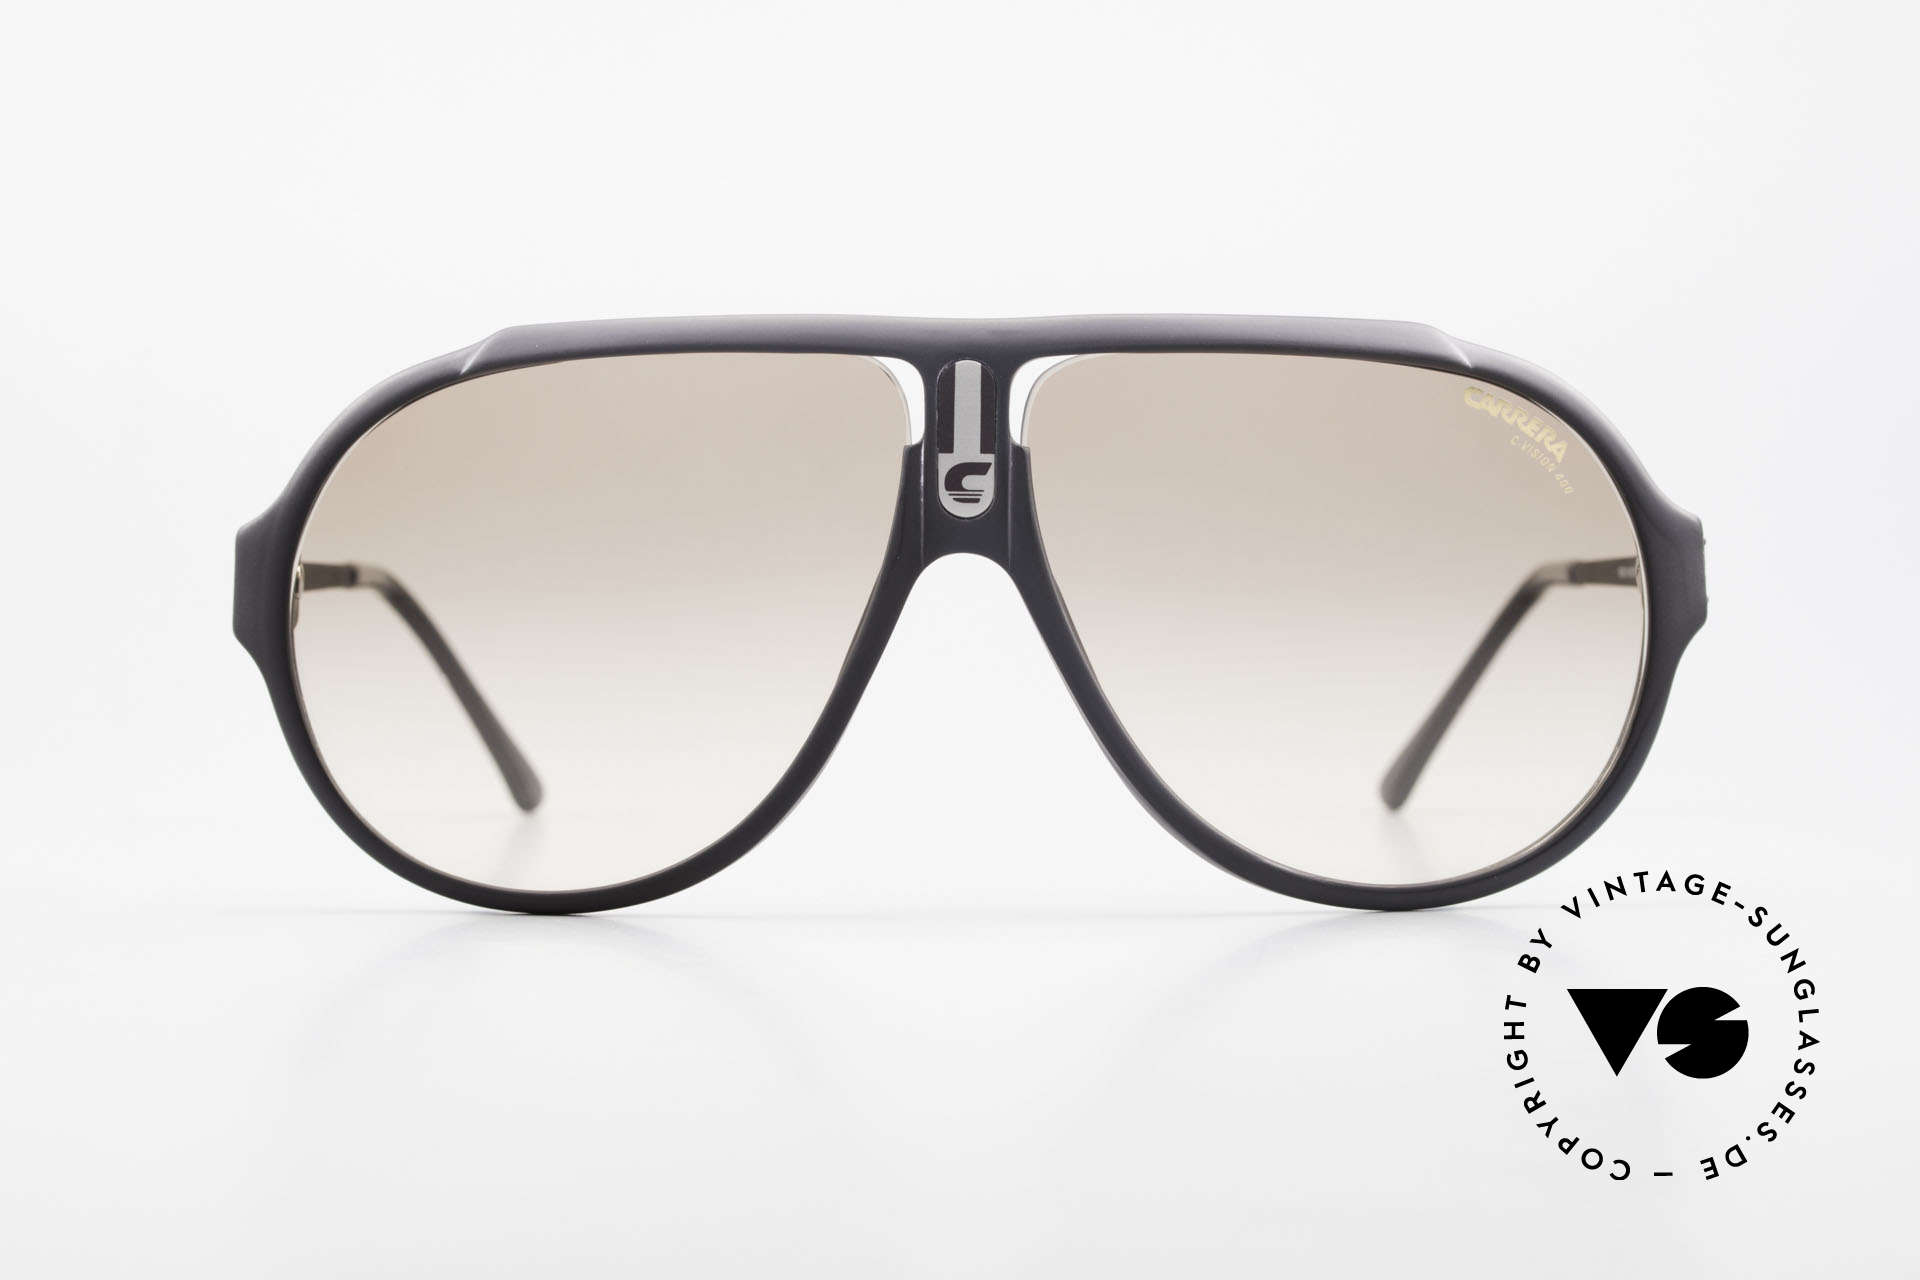 Carrera 5565 Old Sunglasses 1980's Vintage, similar to the famous Carrera 'mod. 5512' (Miami Vice), Made for Men and Women